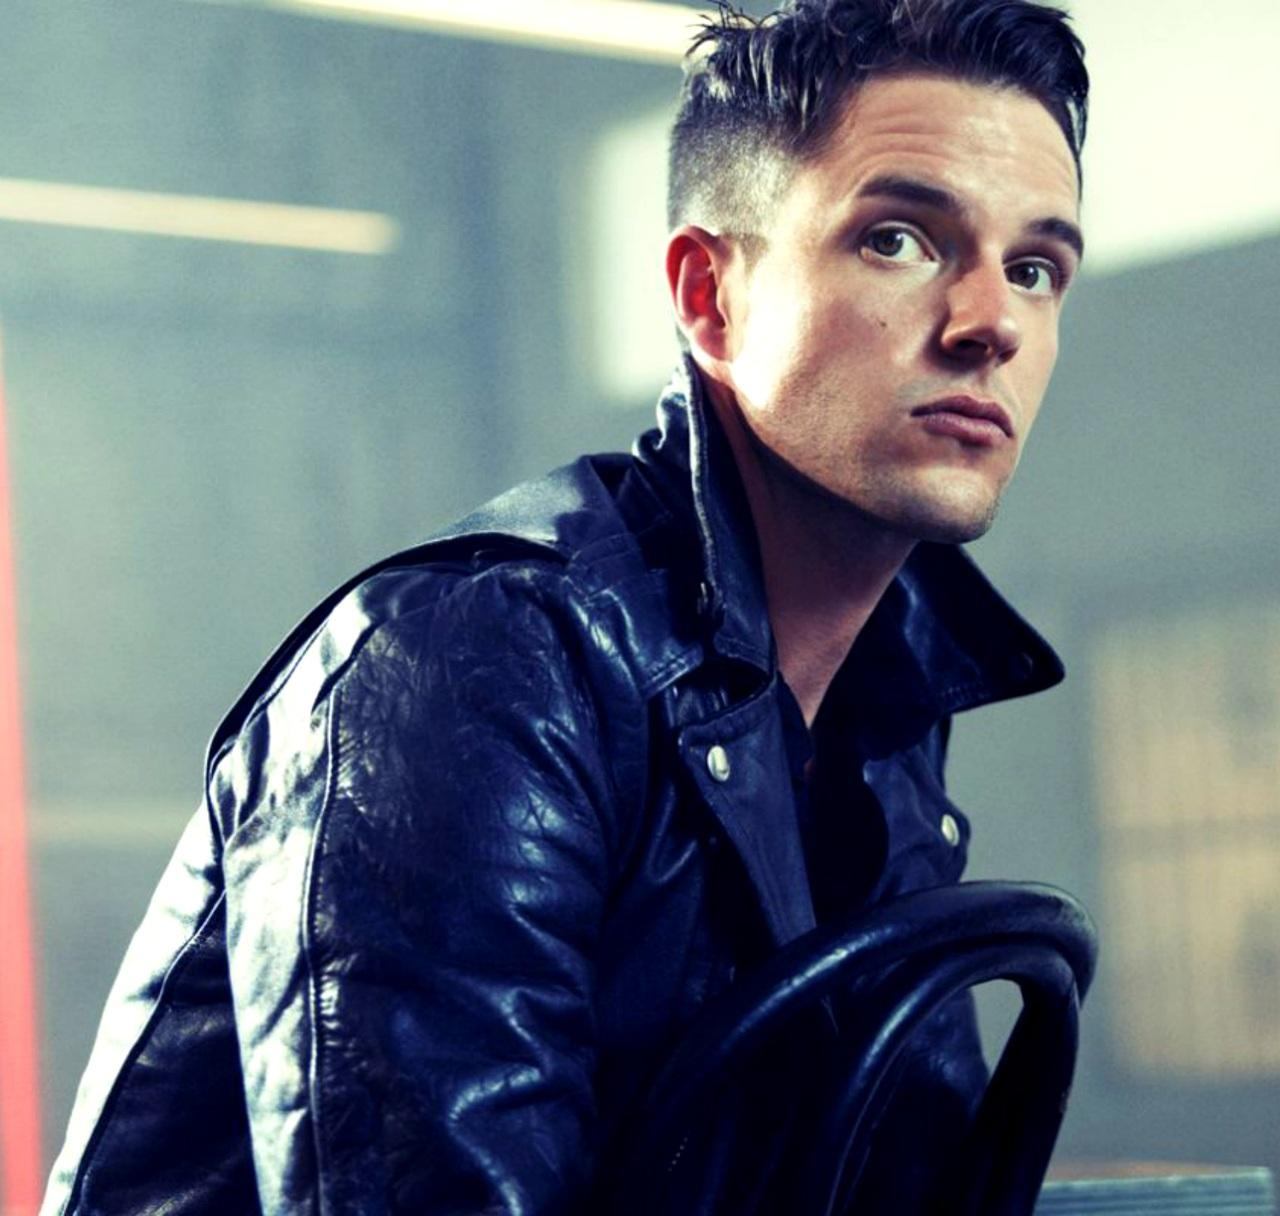 Brandon Flowers with a weight of 75 kg and a feet size of N/A in favorite outfit & clothing style